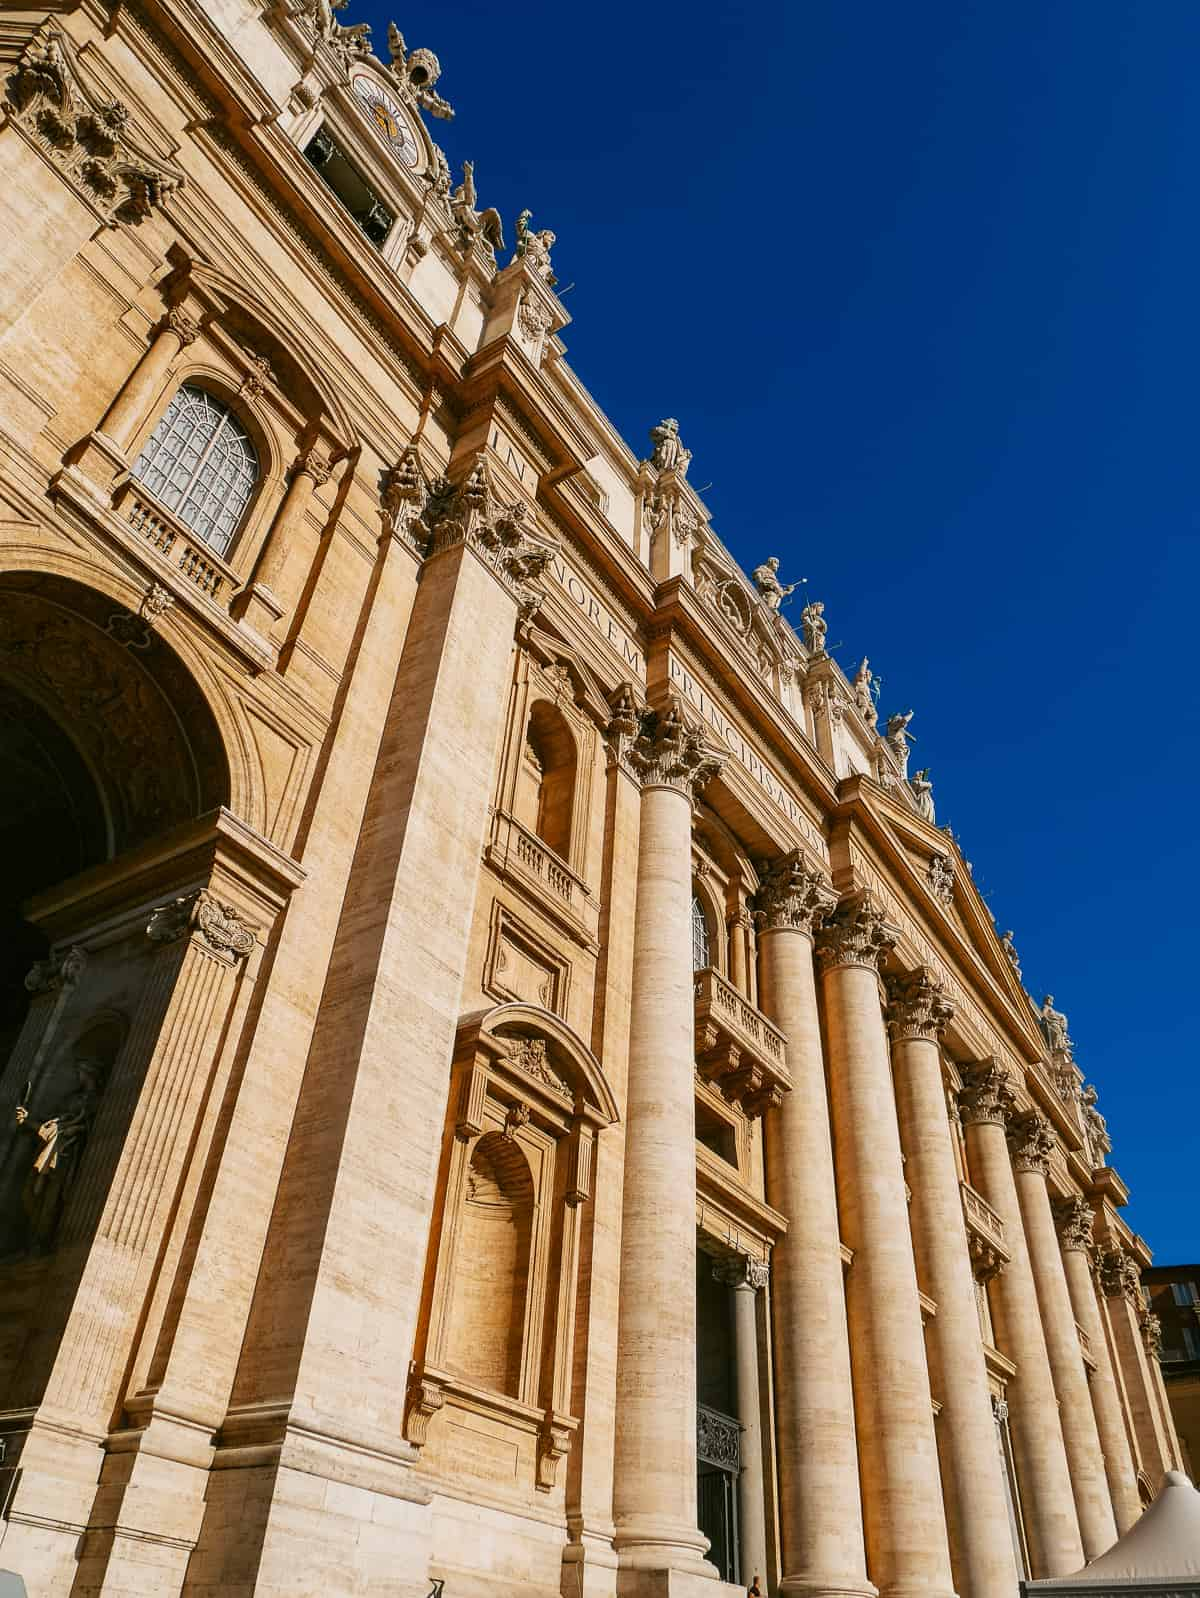 architecture of St Peter's Basilica